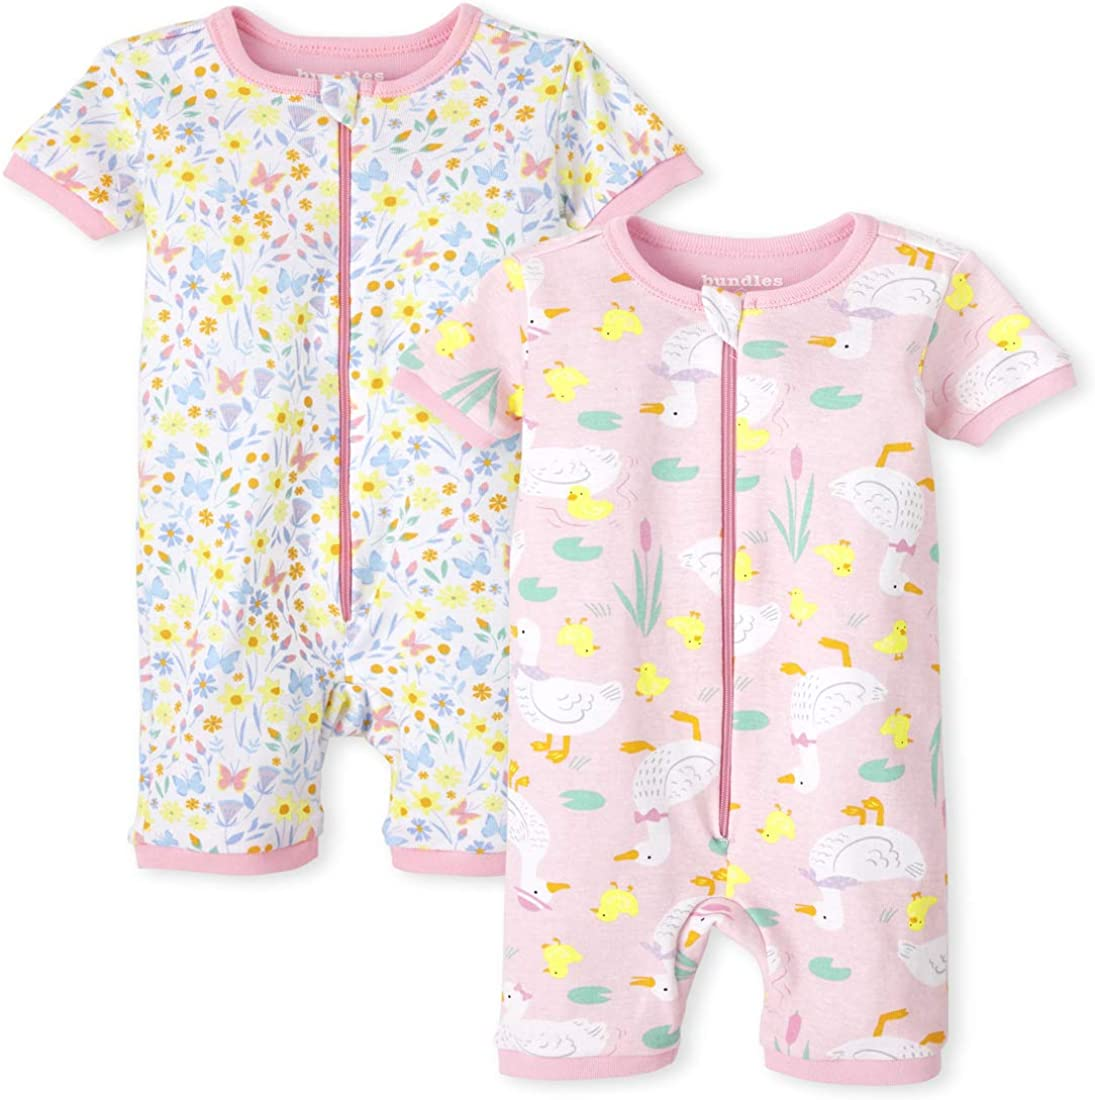 The Children's Place Baby Girls' Two Pack Stretchie Pajamas